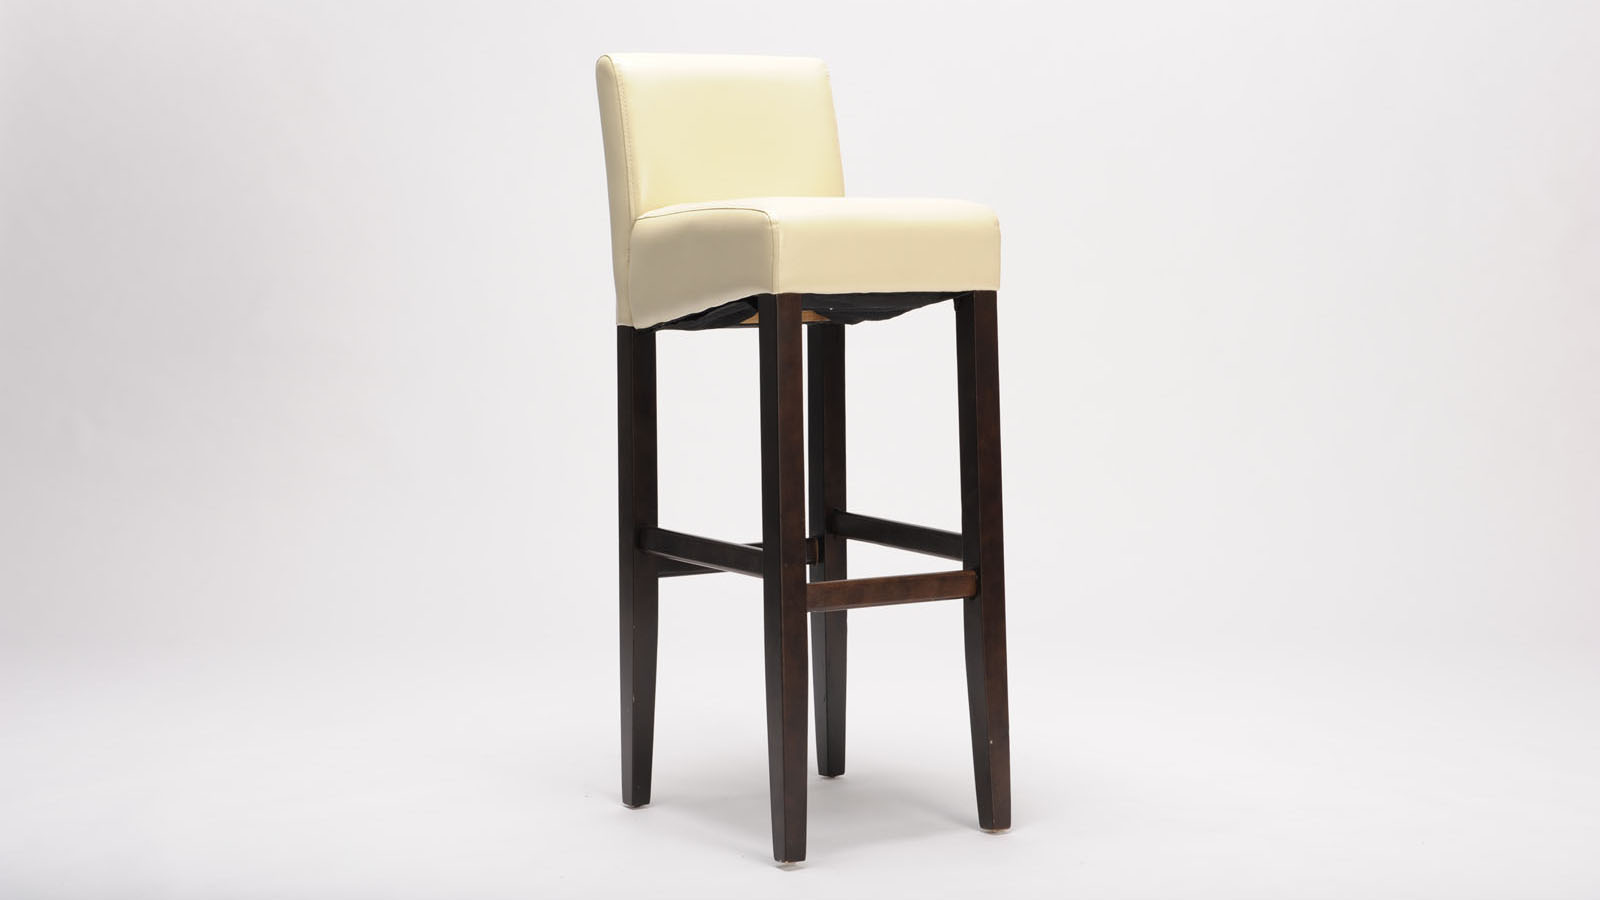 Description of the image, i.e. Artitalia's stool named x with white seating and brown legs.